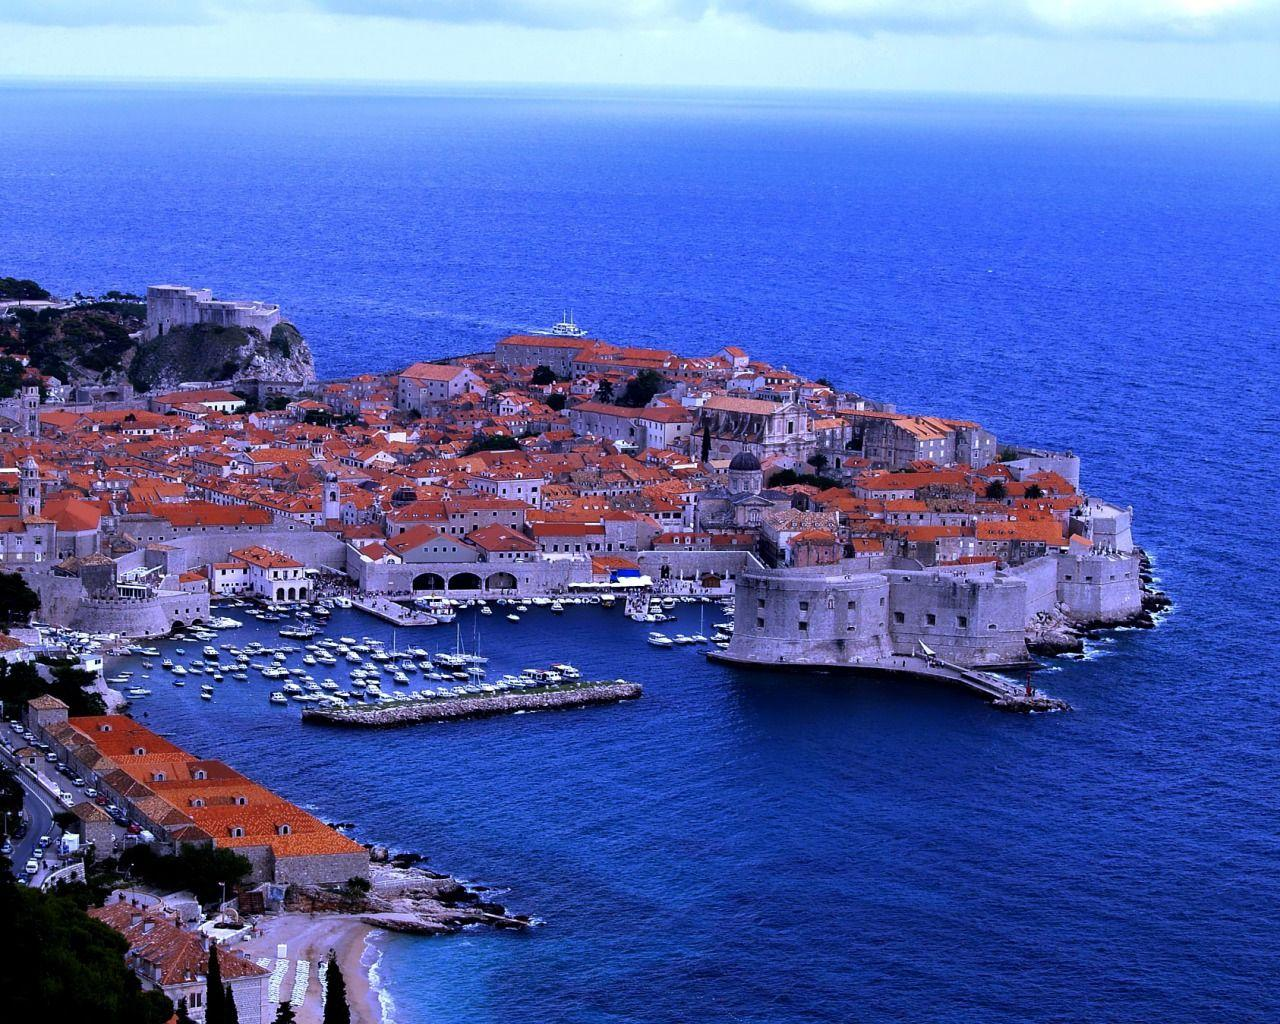 Dubrovnik, Croatia Wallpapers and Backgrounds Image